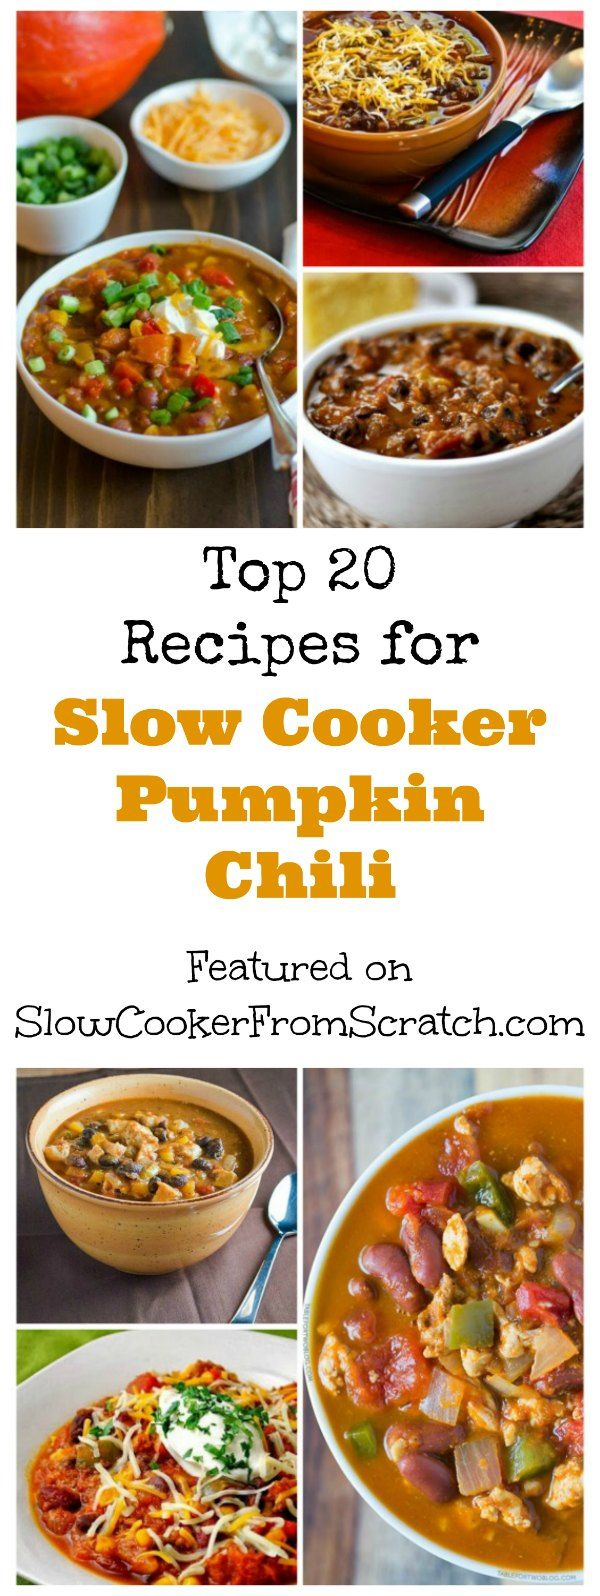 Slow Cooker Pumpkin Chili is the perfect dinner for Halloween Night, and here are the Top 20 Recipes for Slow Cooker Pumpkin Chili featured on Slow Cooker from Scratch! [found on SlowCookerFromScratch.com]